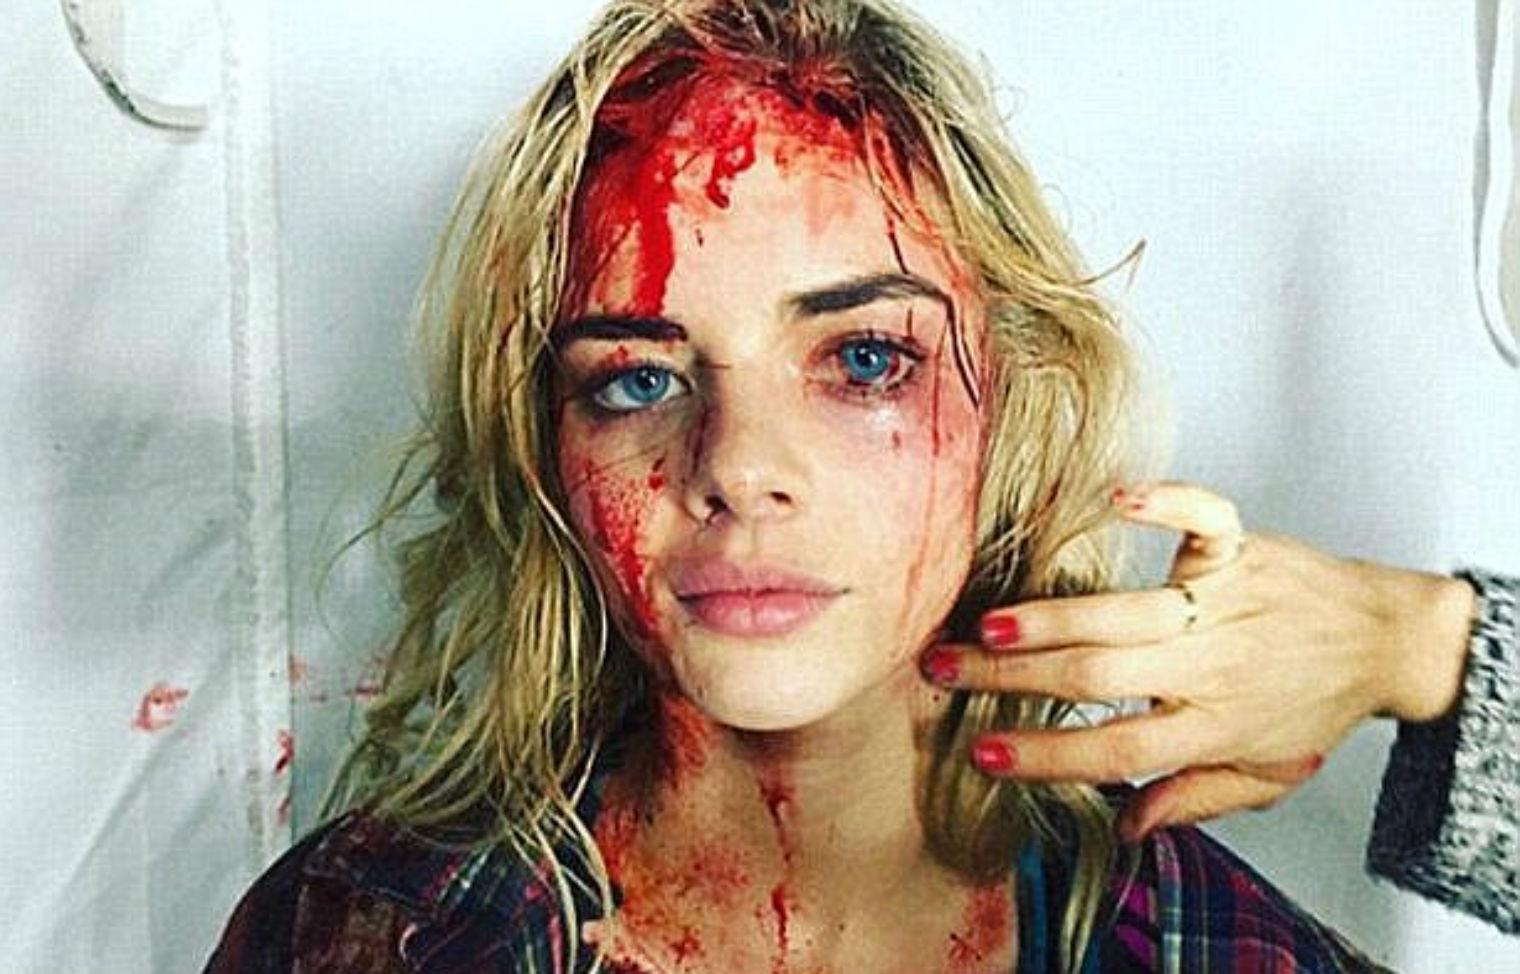 There S A Problem With This Photo Of A Beaten Up Female Trump